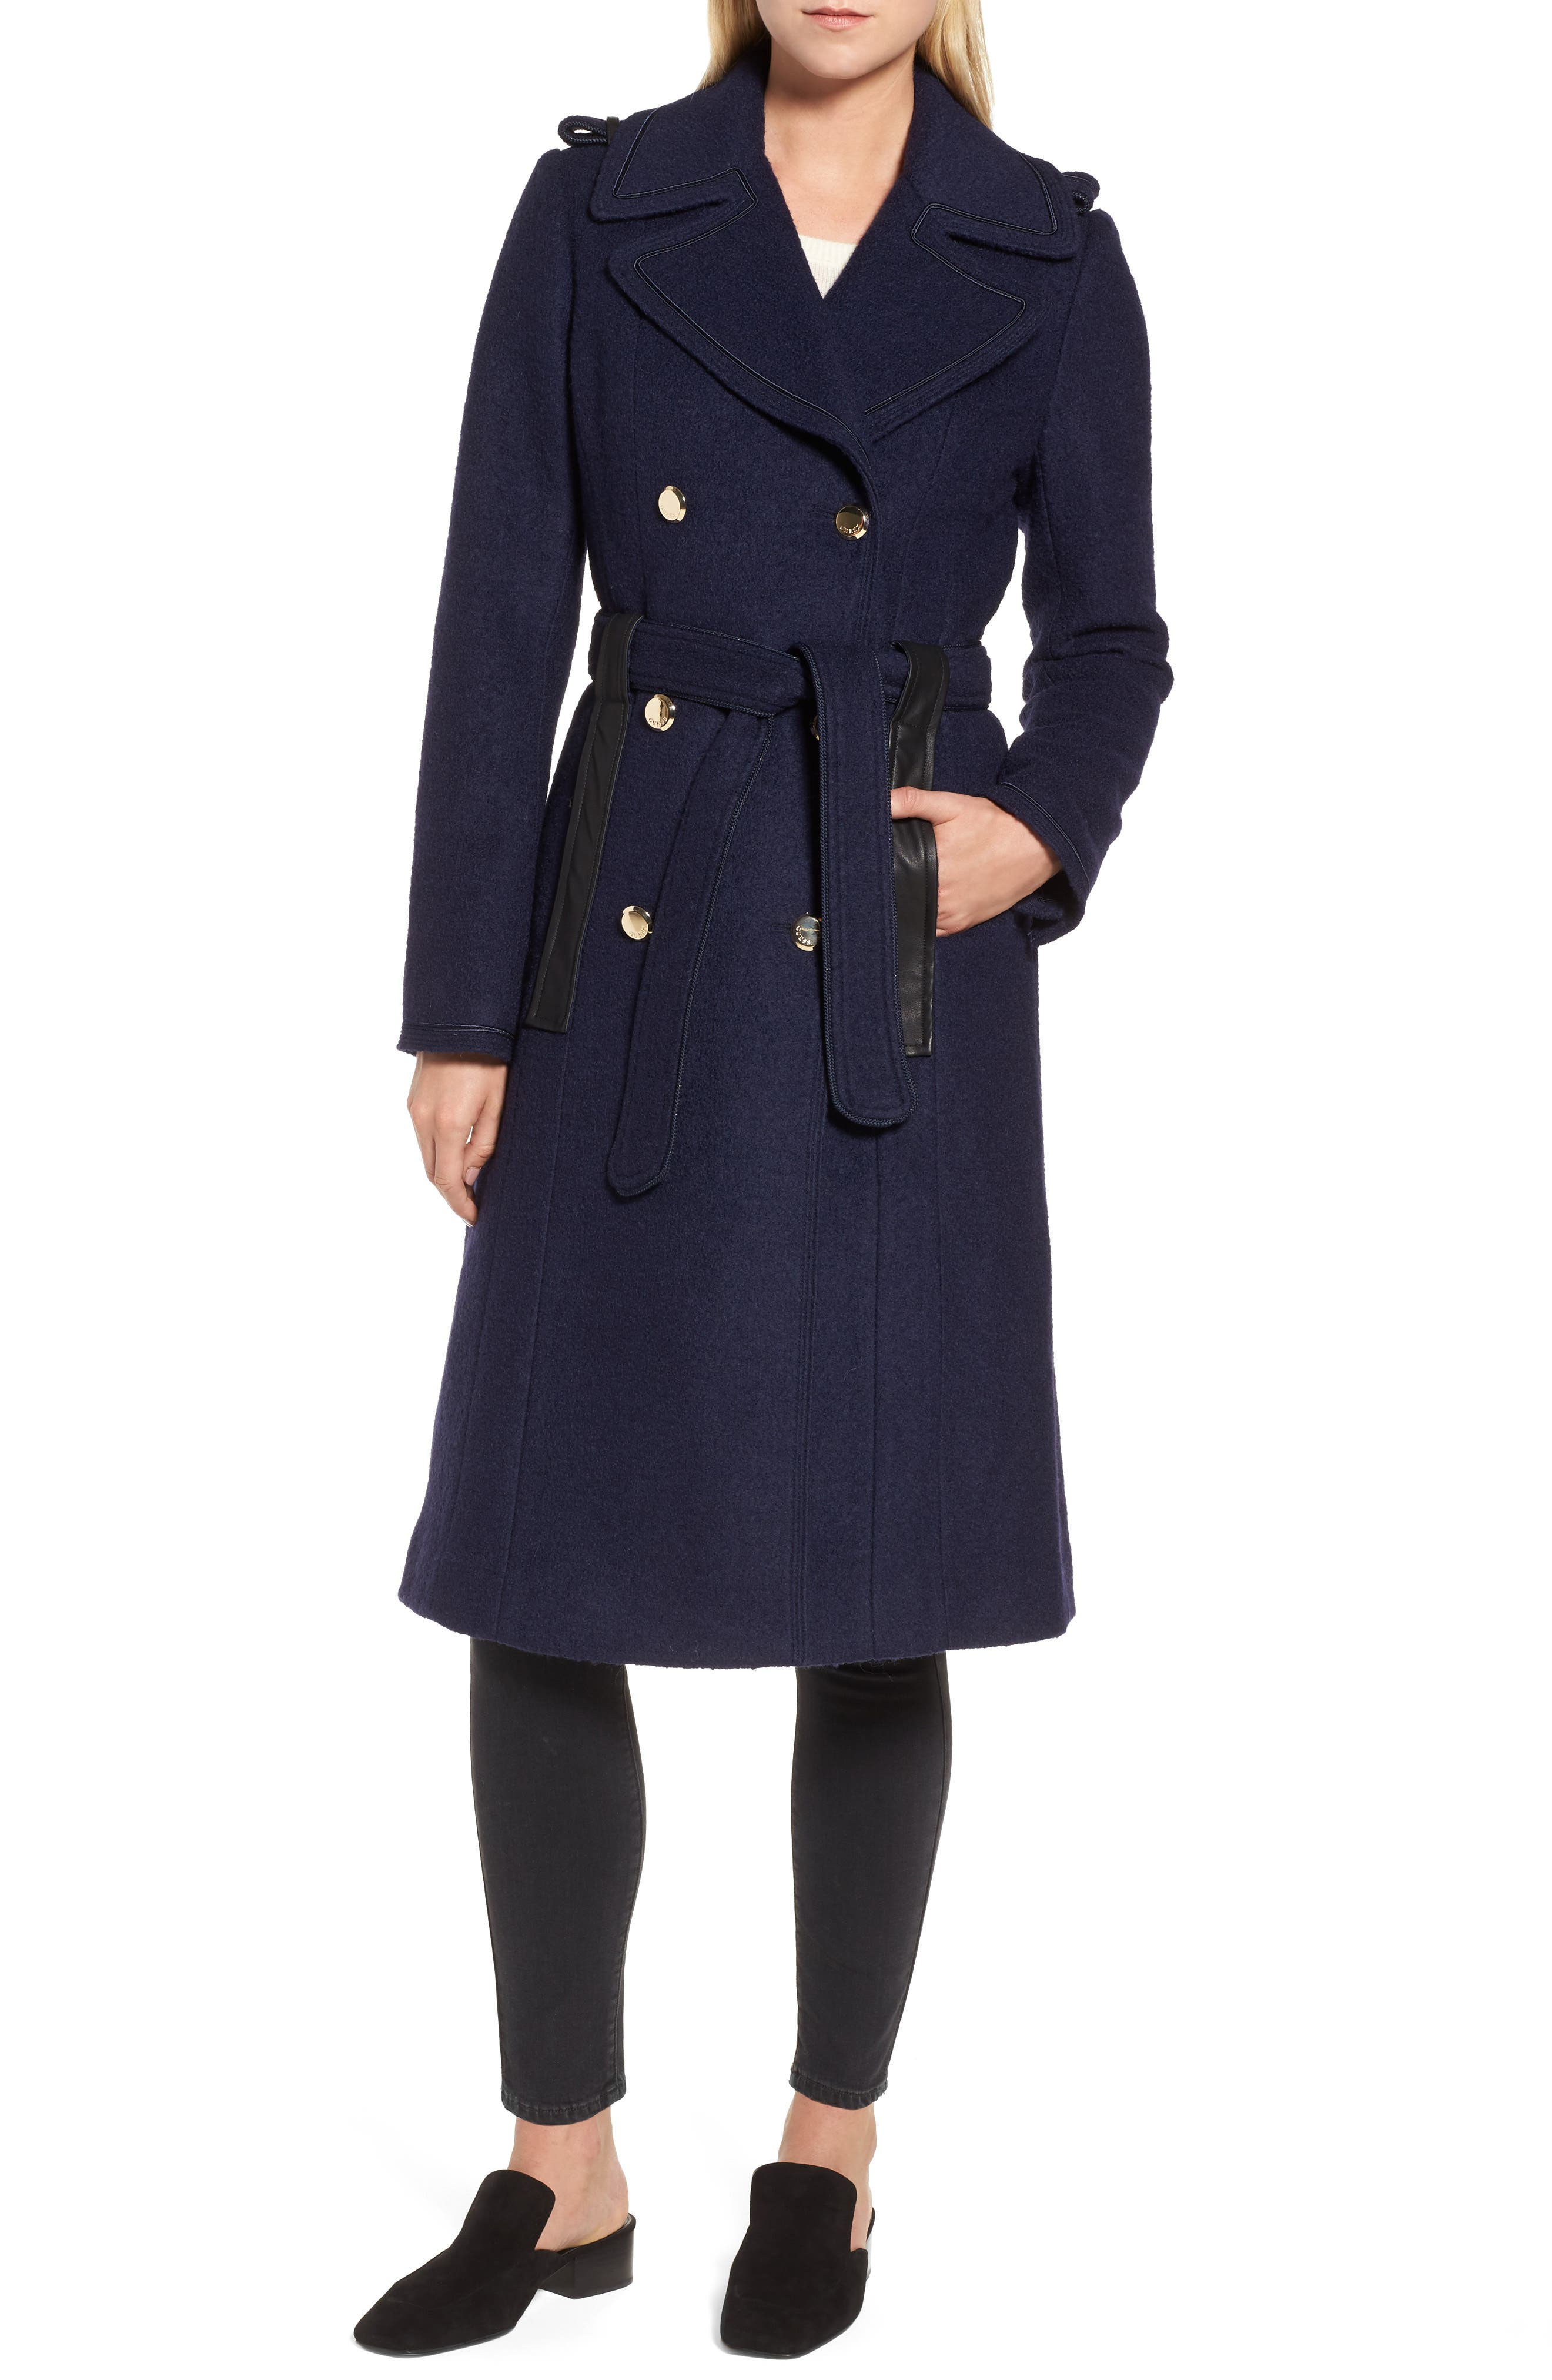 Boiled Wool Trench Coat,                             Main thumbnail 1, color,                             410